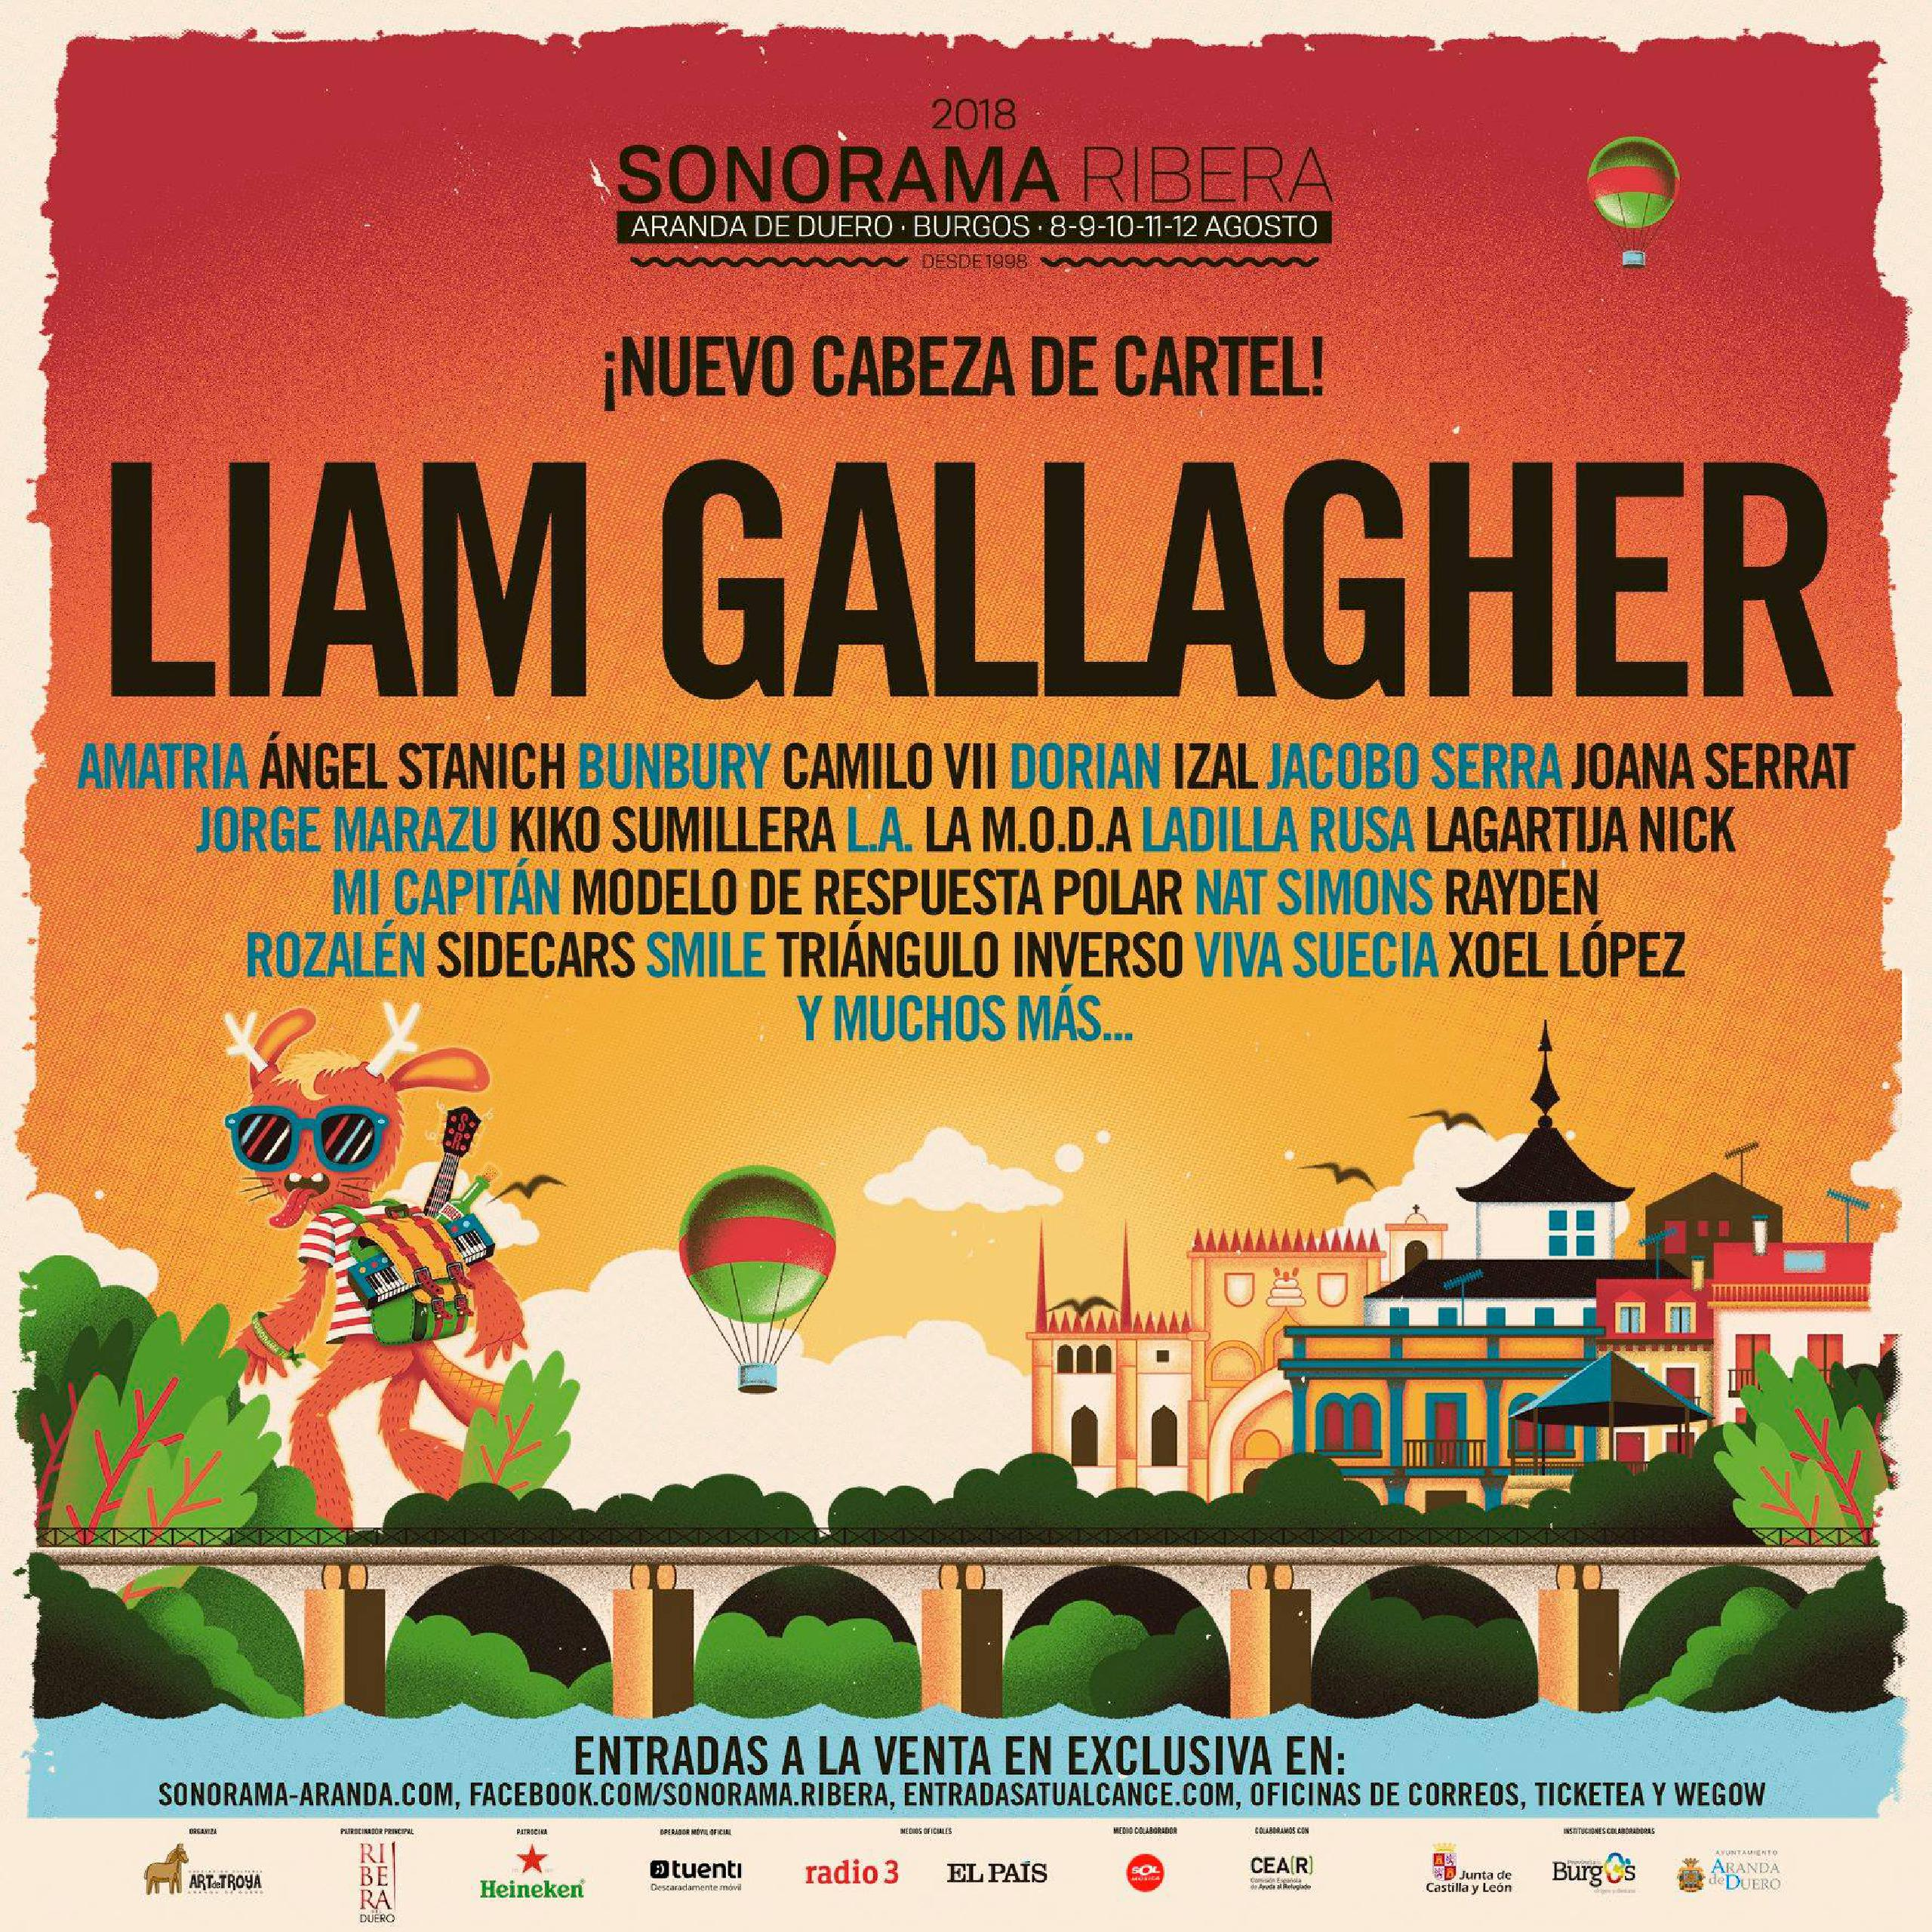 Cartel confirmaciones Sonorama Ribera 2018 Liam Gallagher